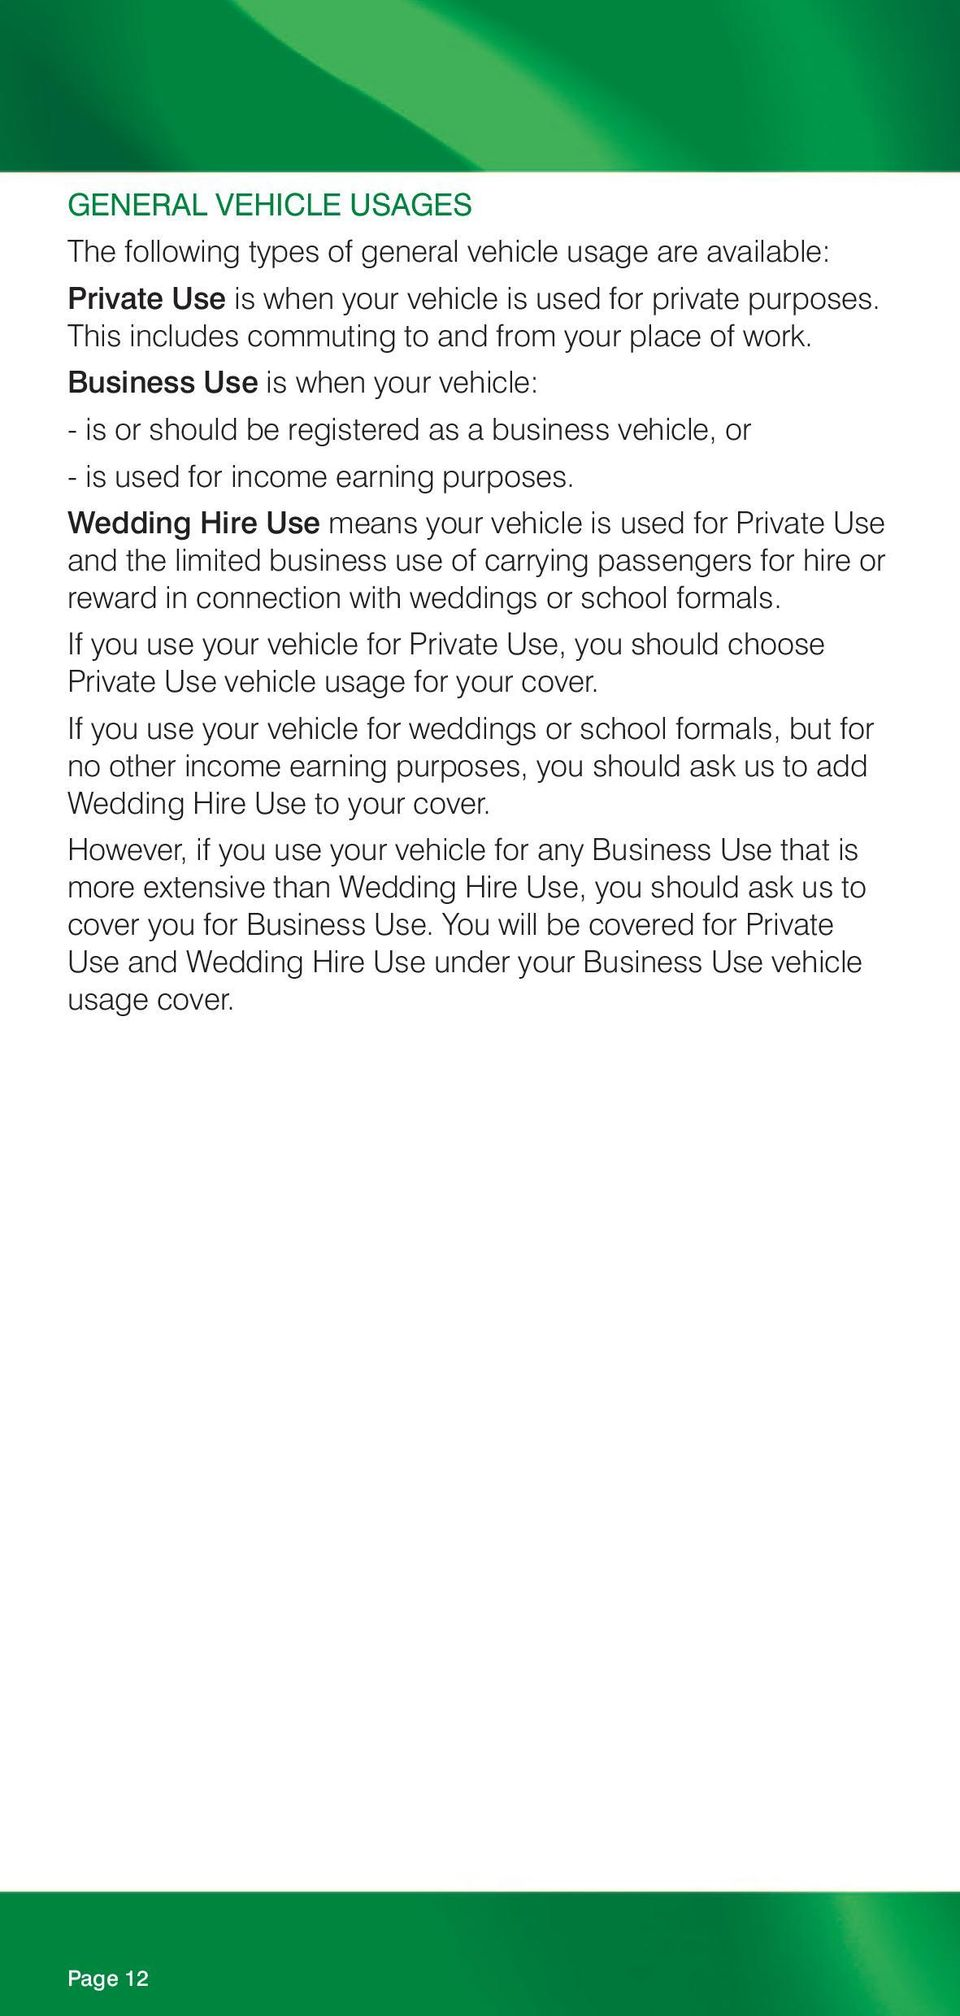 Wedding Hire Use means your vehicle is used for Private Use and the limited business use of carrying passengers for hire or reward in connection with weddings or school formals.